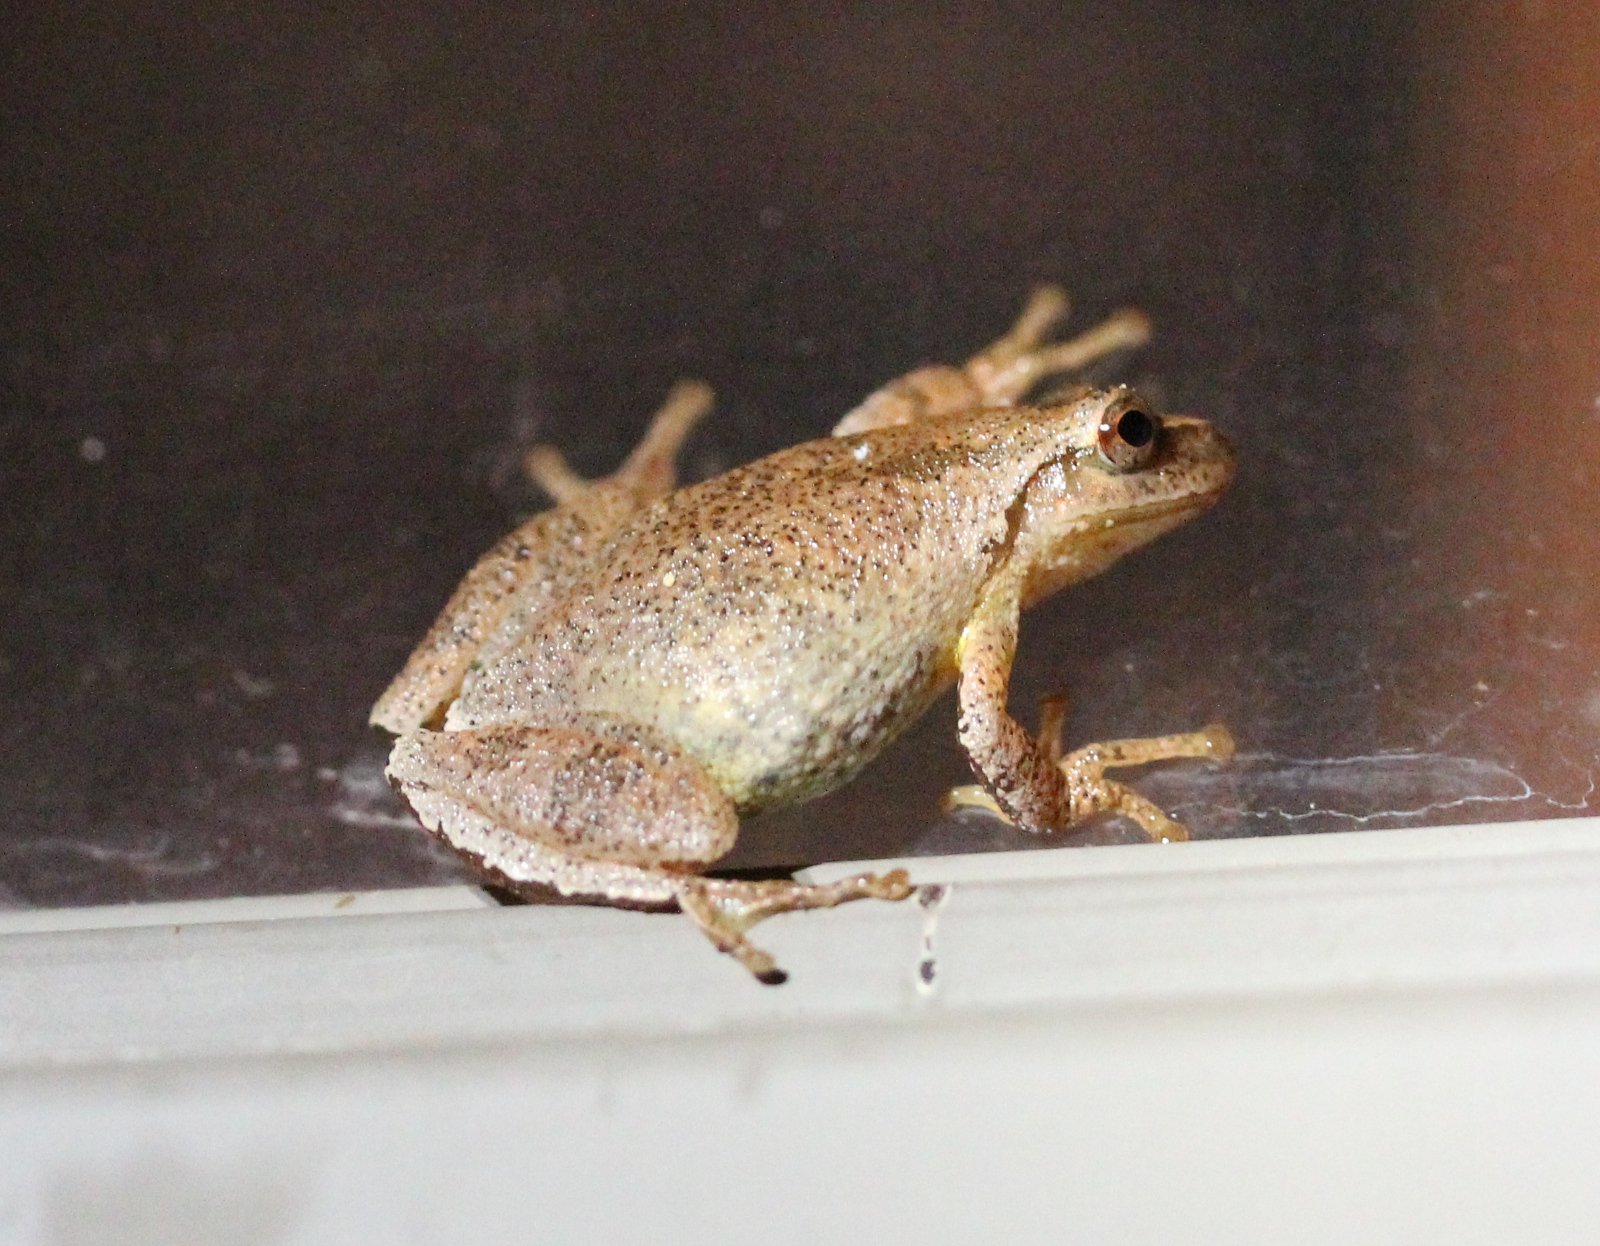 Brownish frog on window pane, lit by flashlight